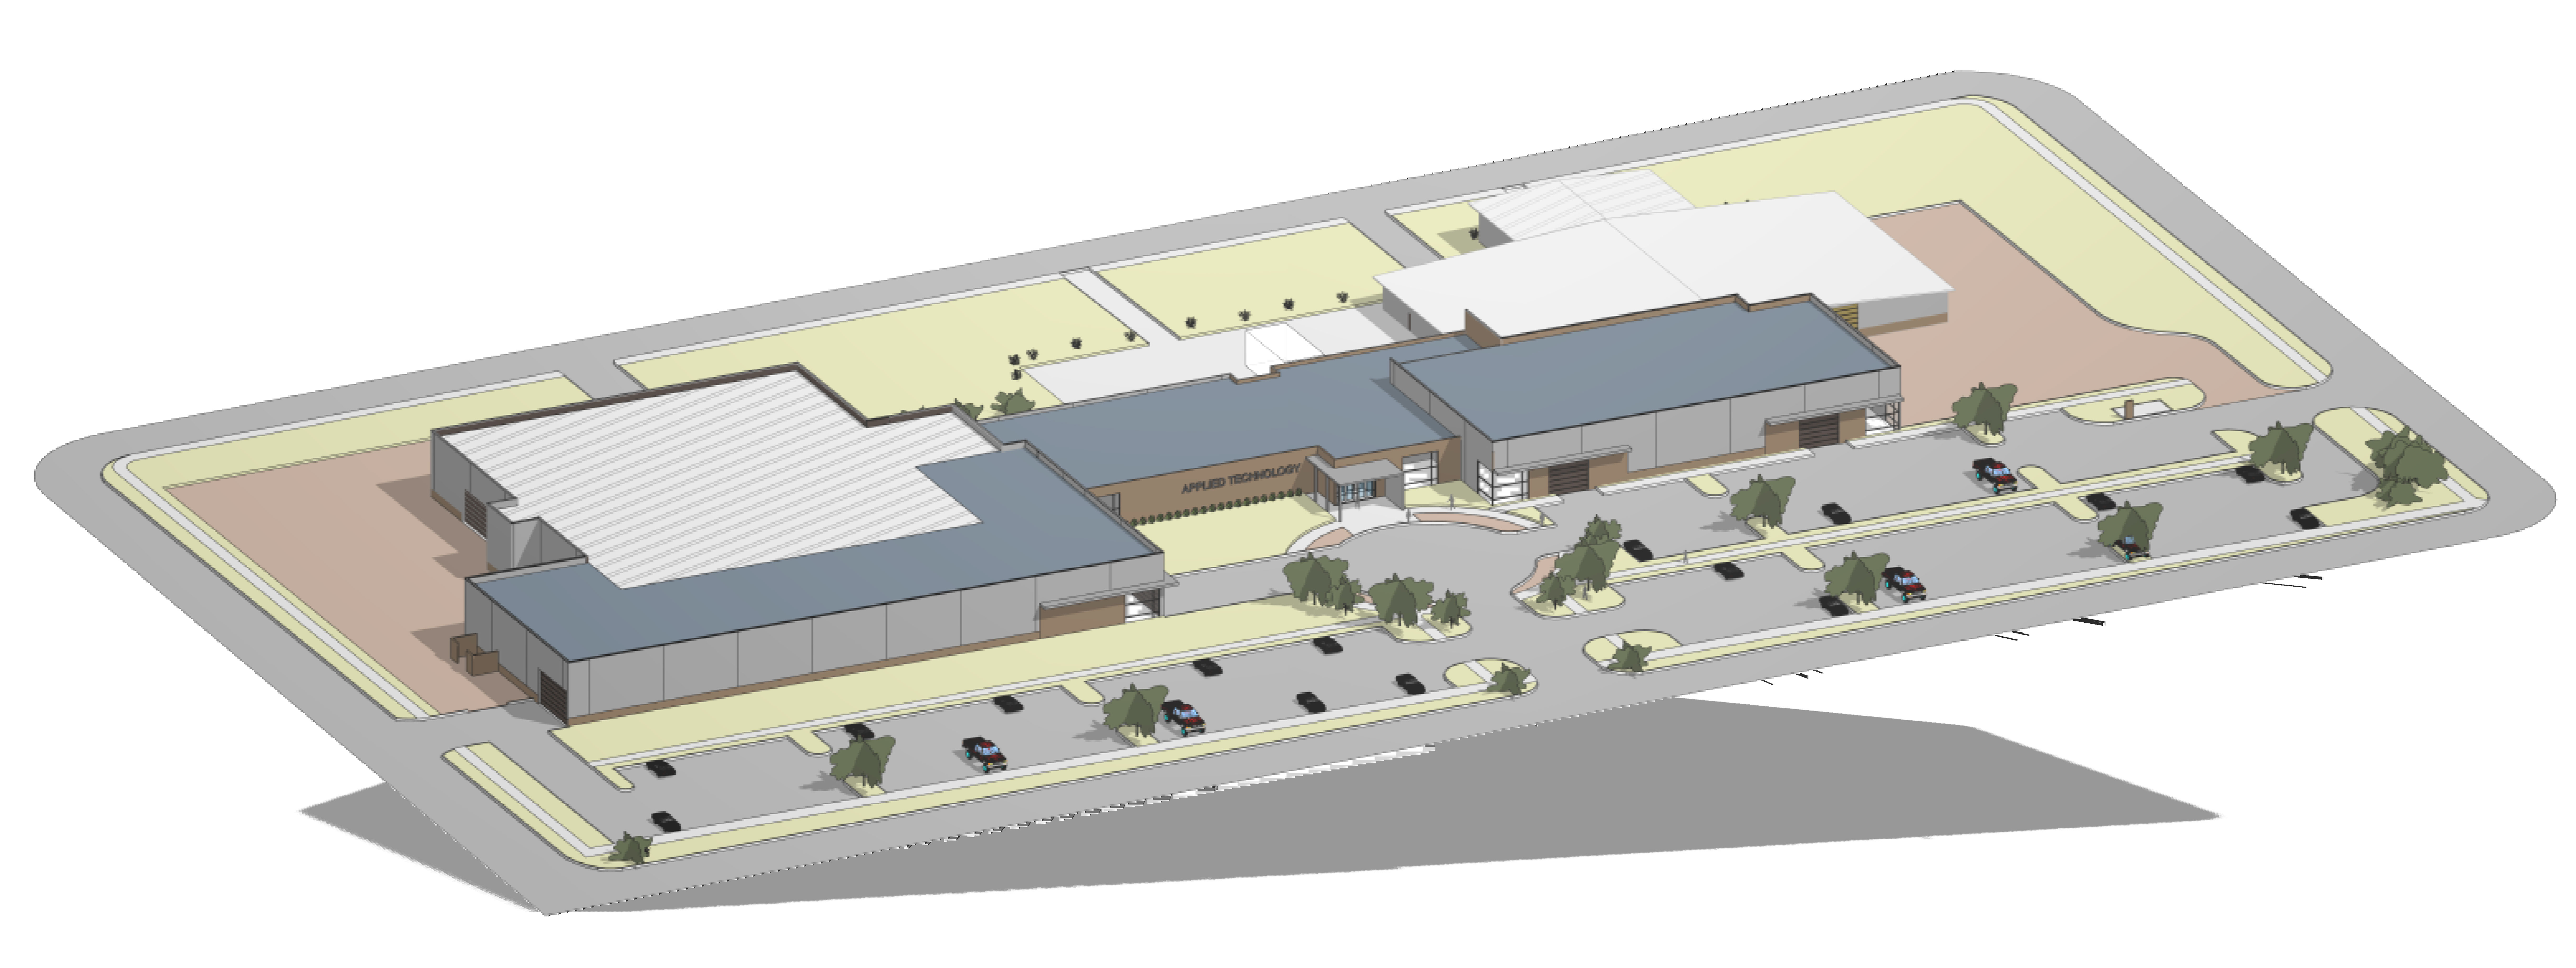 Design of Northeastern CTE expansion of Applied Technology Campus